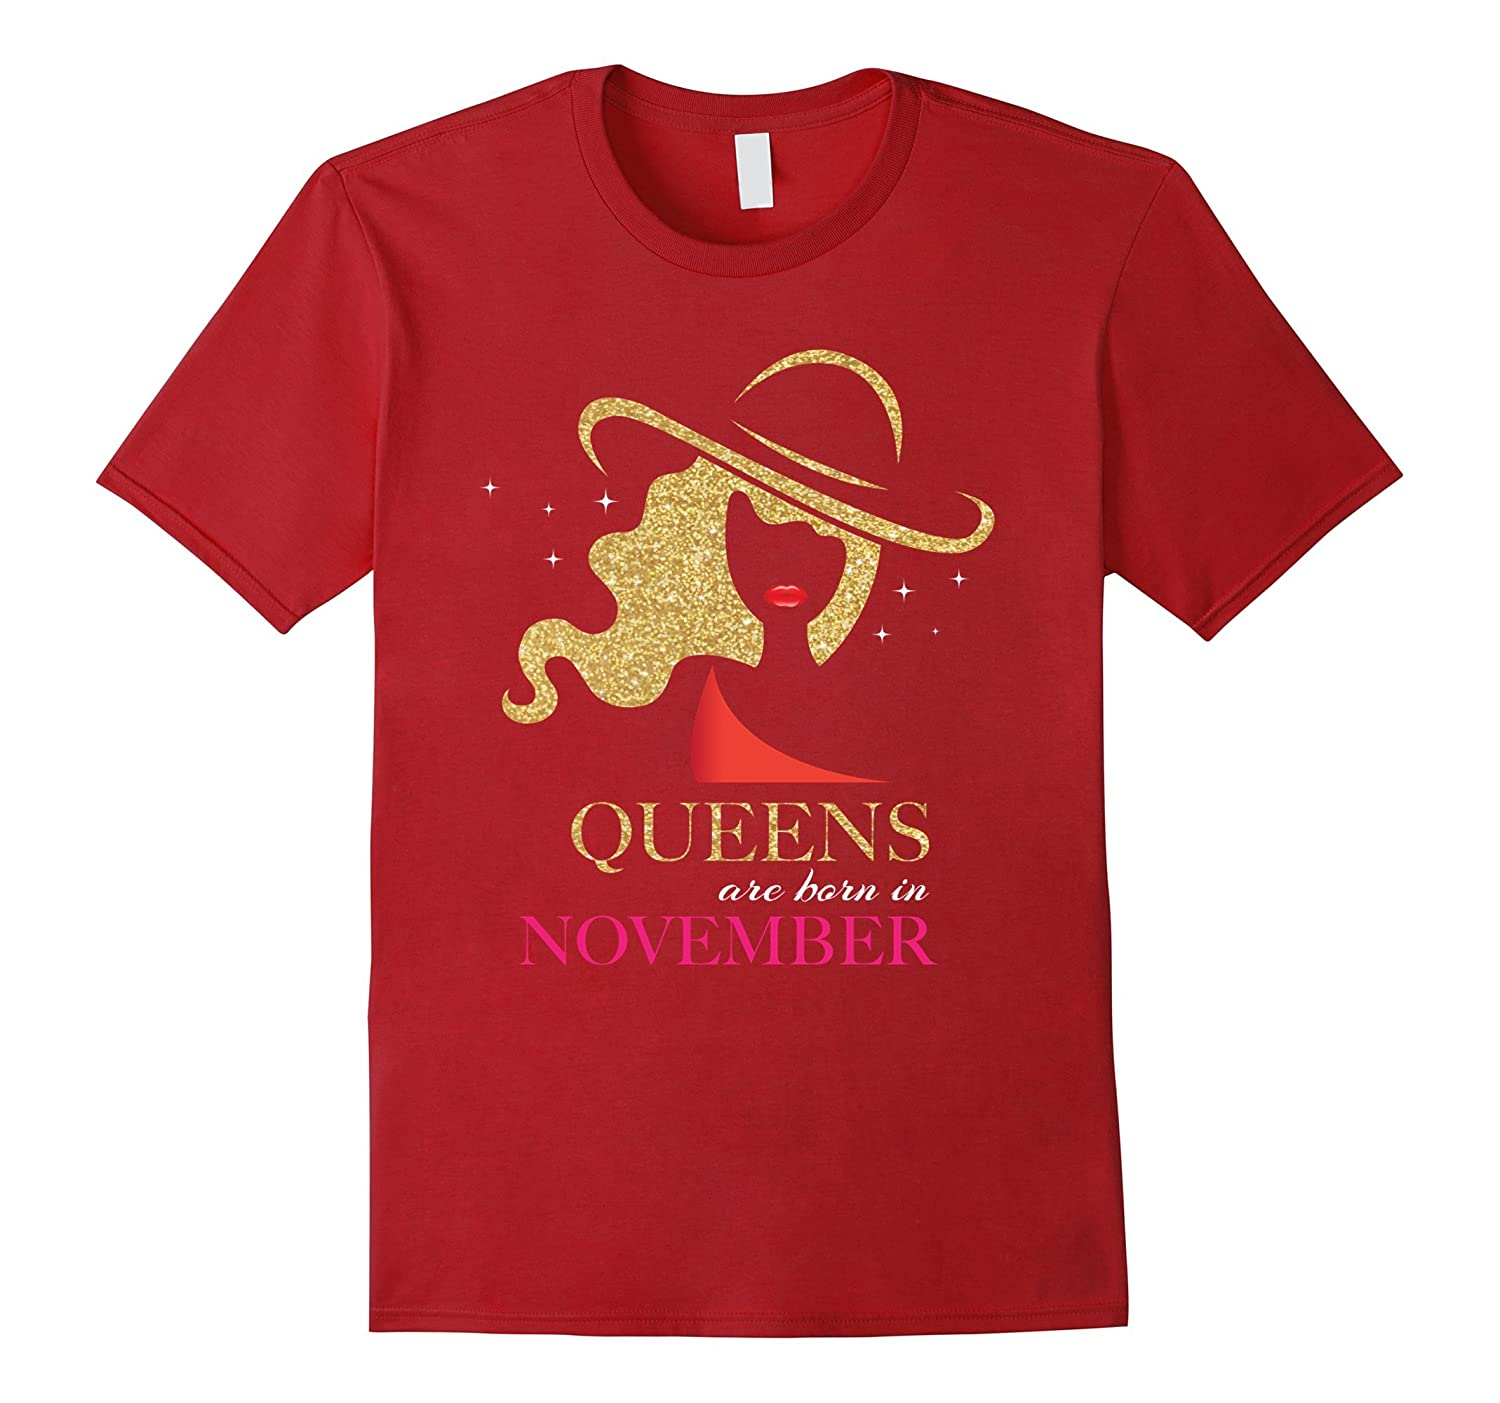 Queens are Born in November T-shirt -Women s and Girl s Gift-FL ... cf2bc9eba